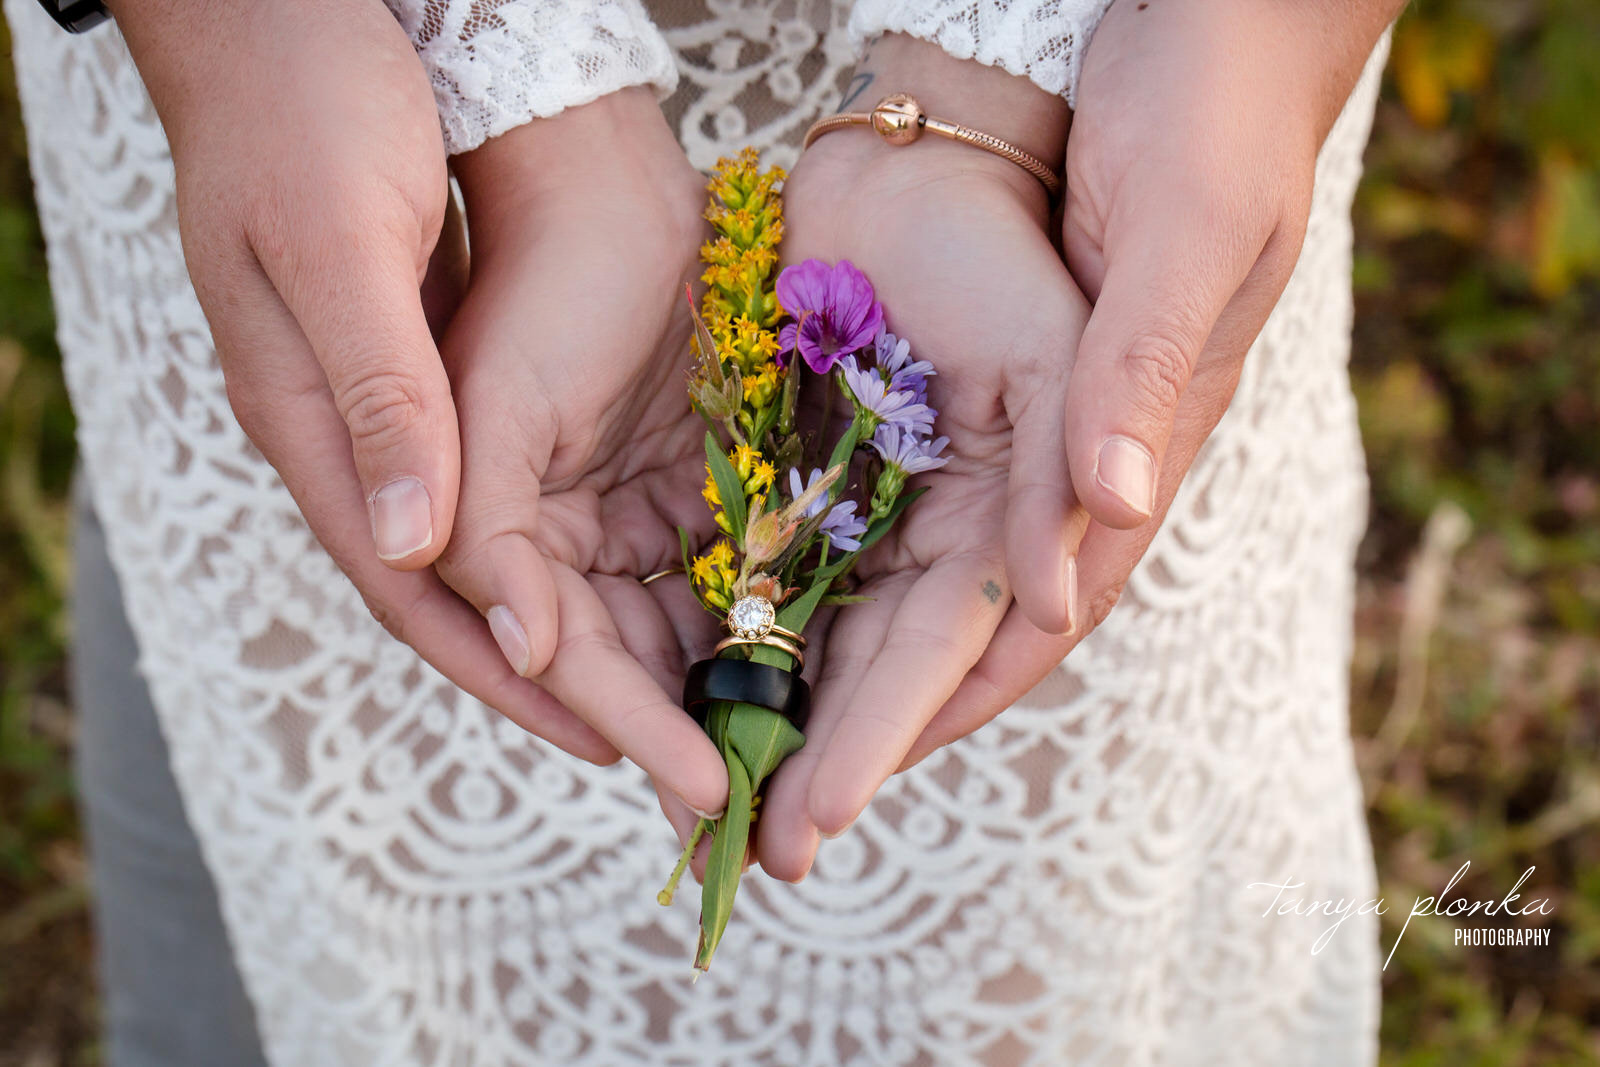 Bride's hands are placed in groom's hands as they hold wildflowers with wedding bands around the stems